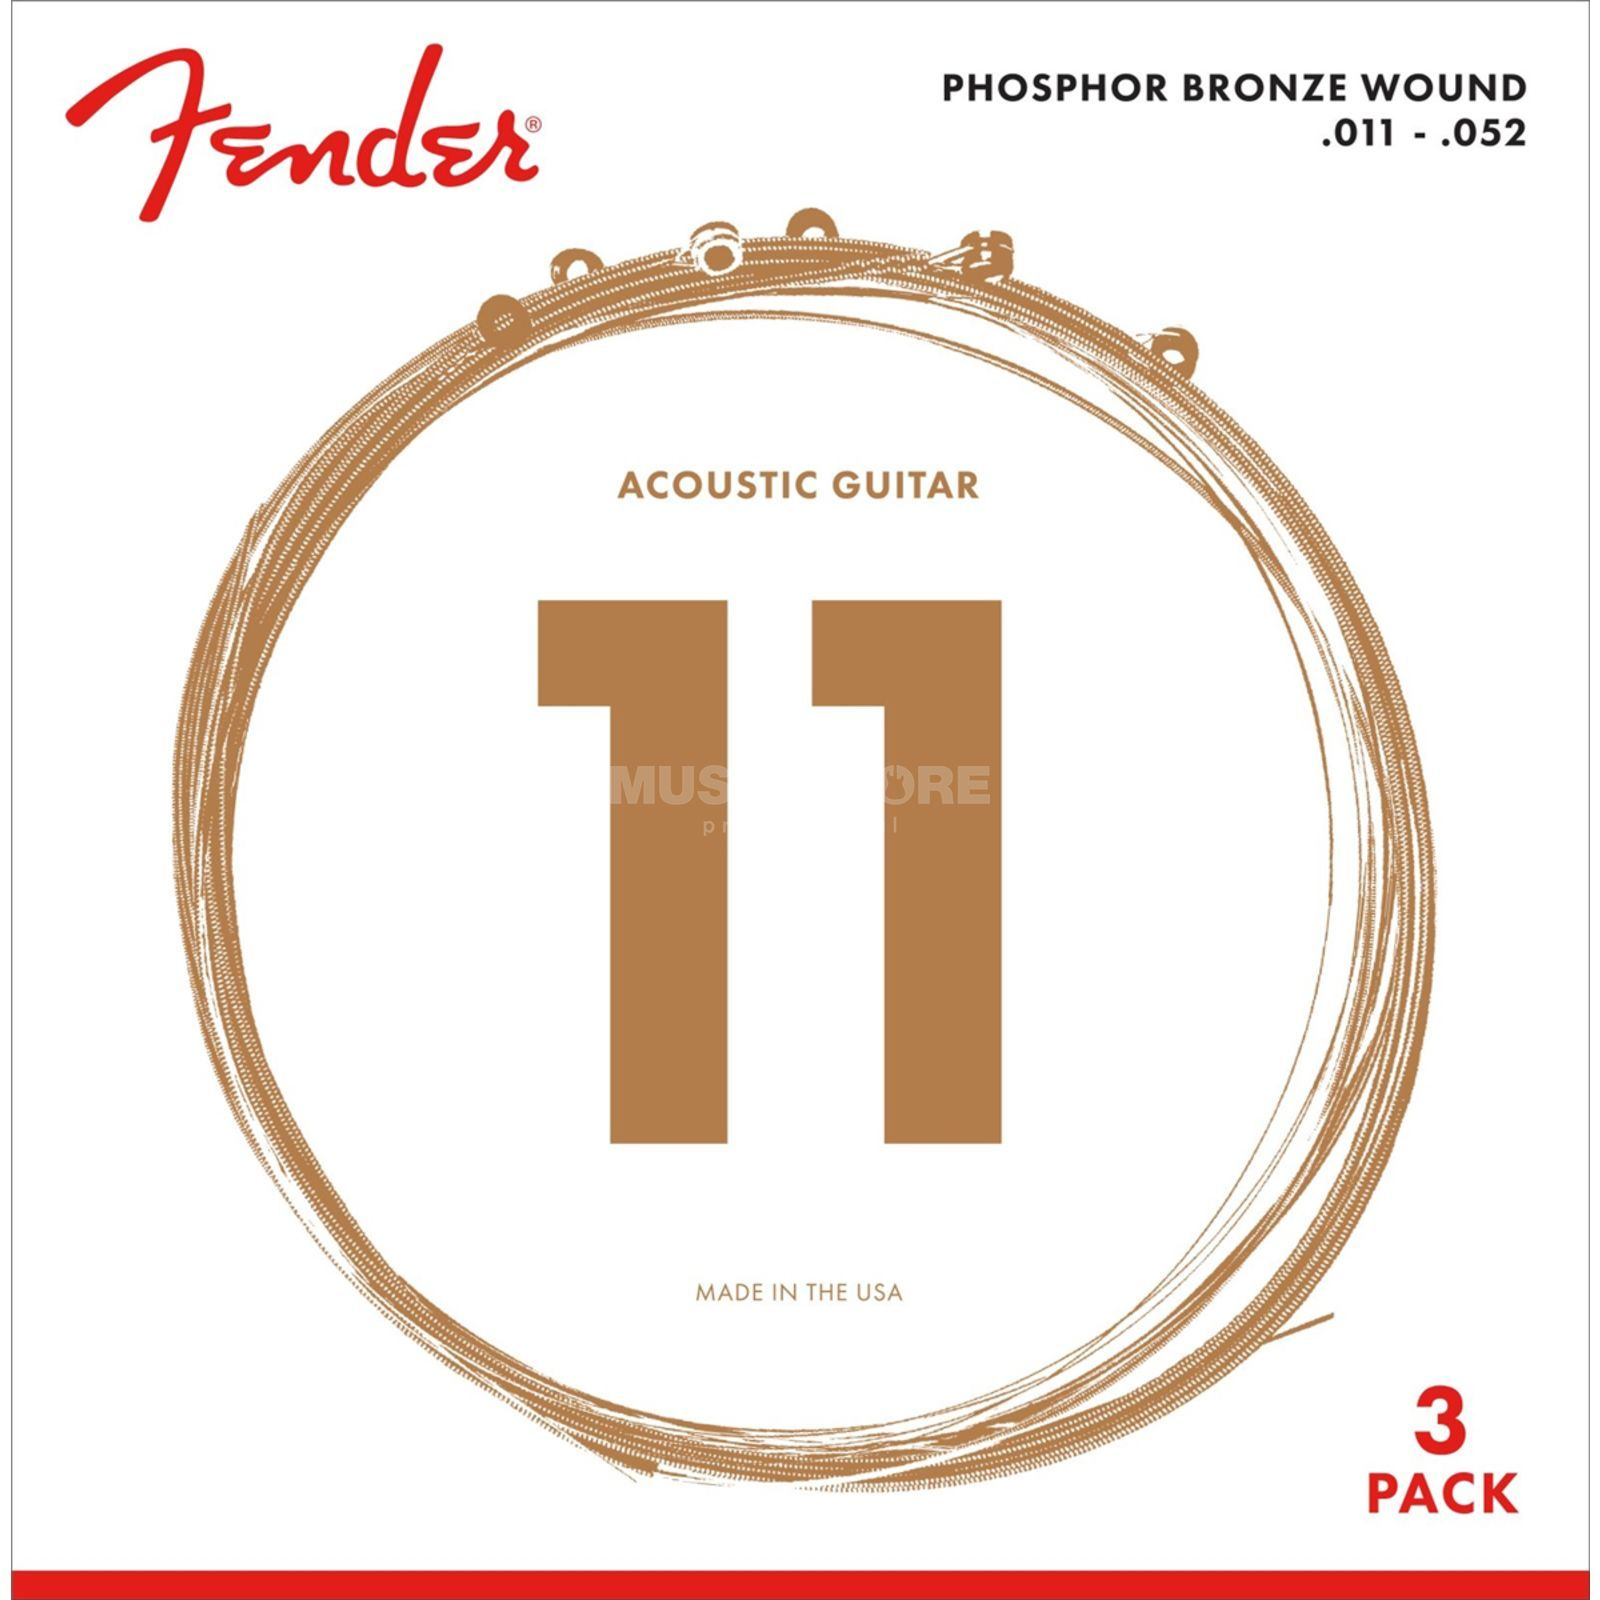 Fender A-Git. Saiten 60CL 11-52 3-Pack Phosphor Bronze Product Image